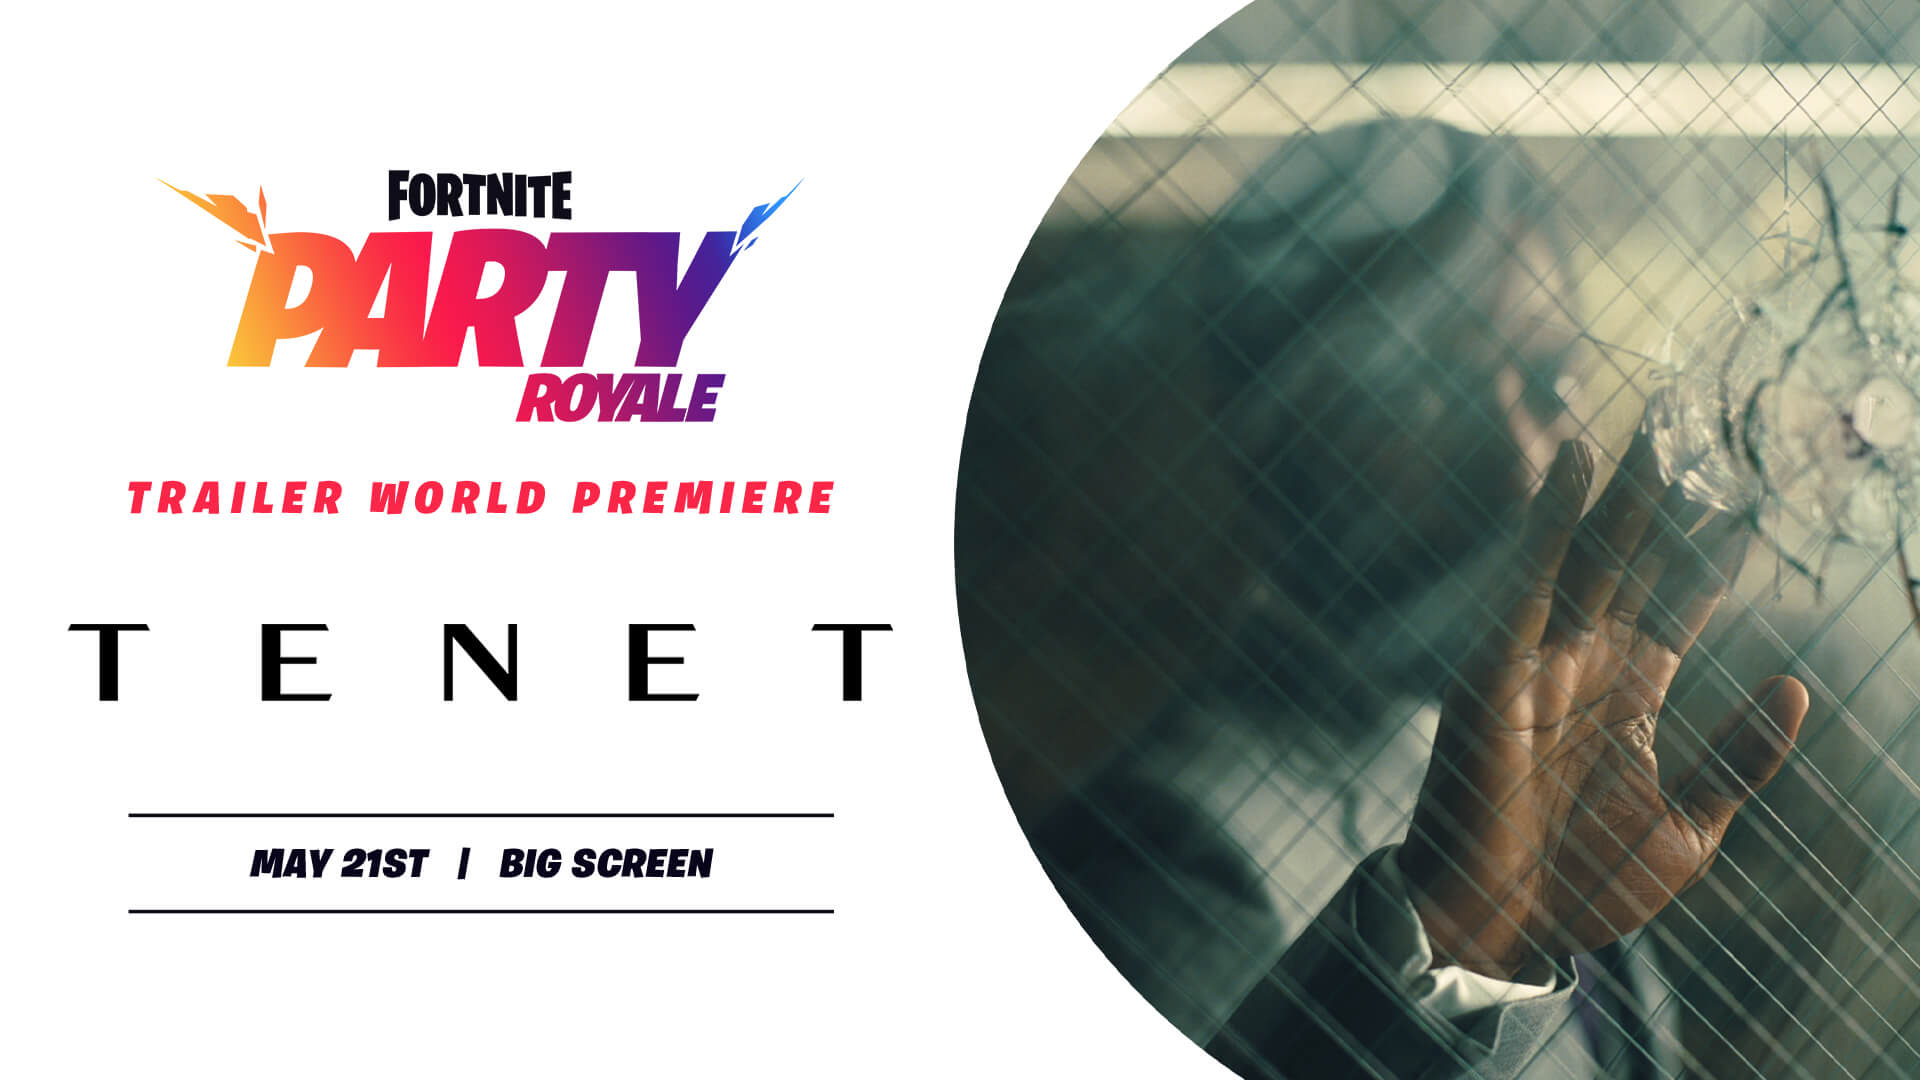 Tenet Trailer in Fortnite Party Royale